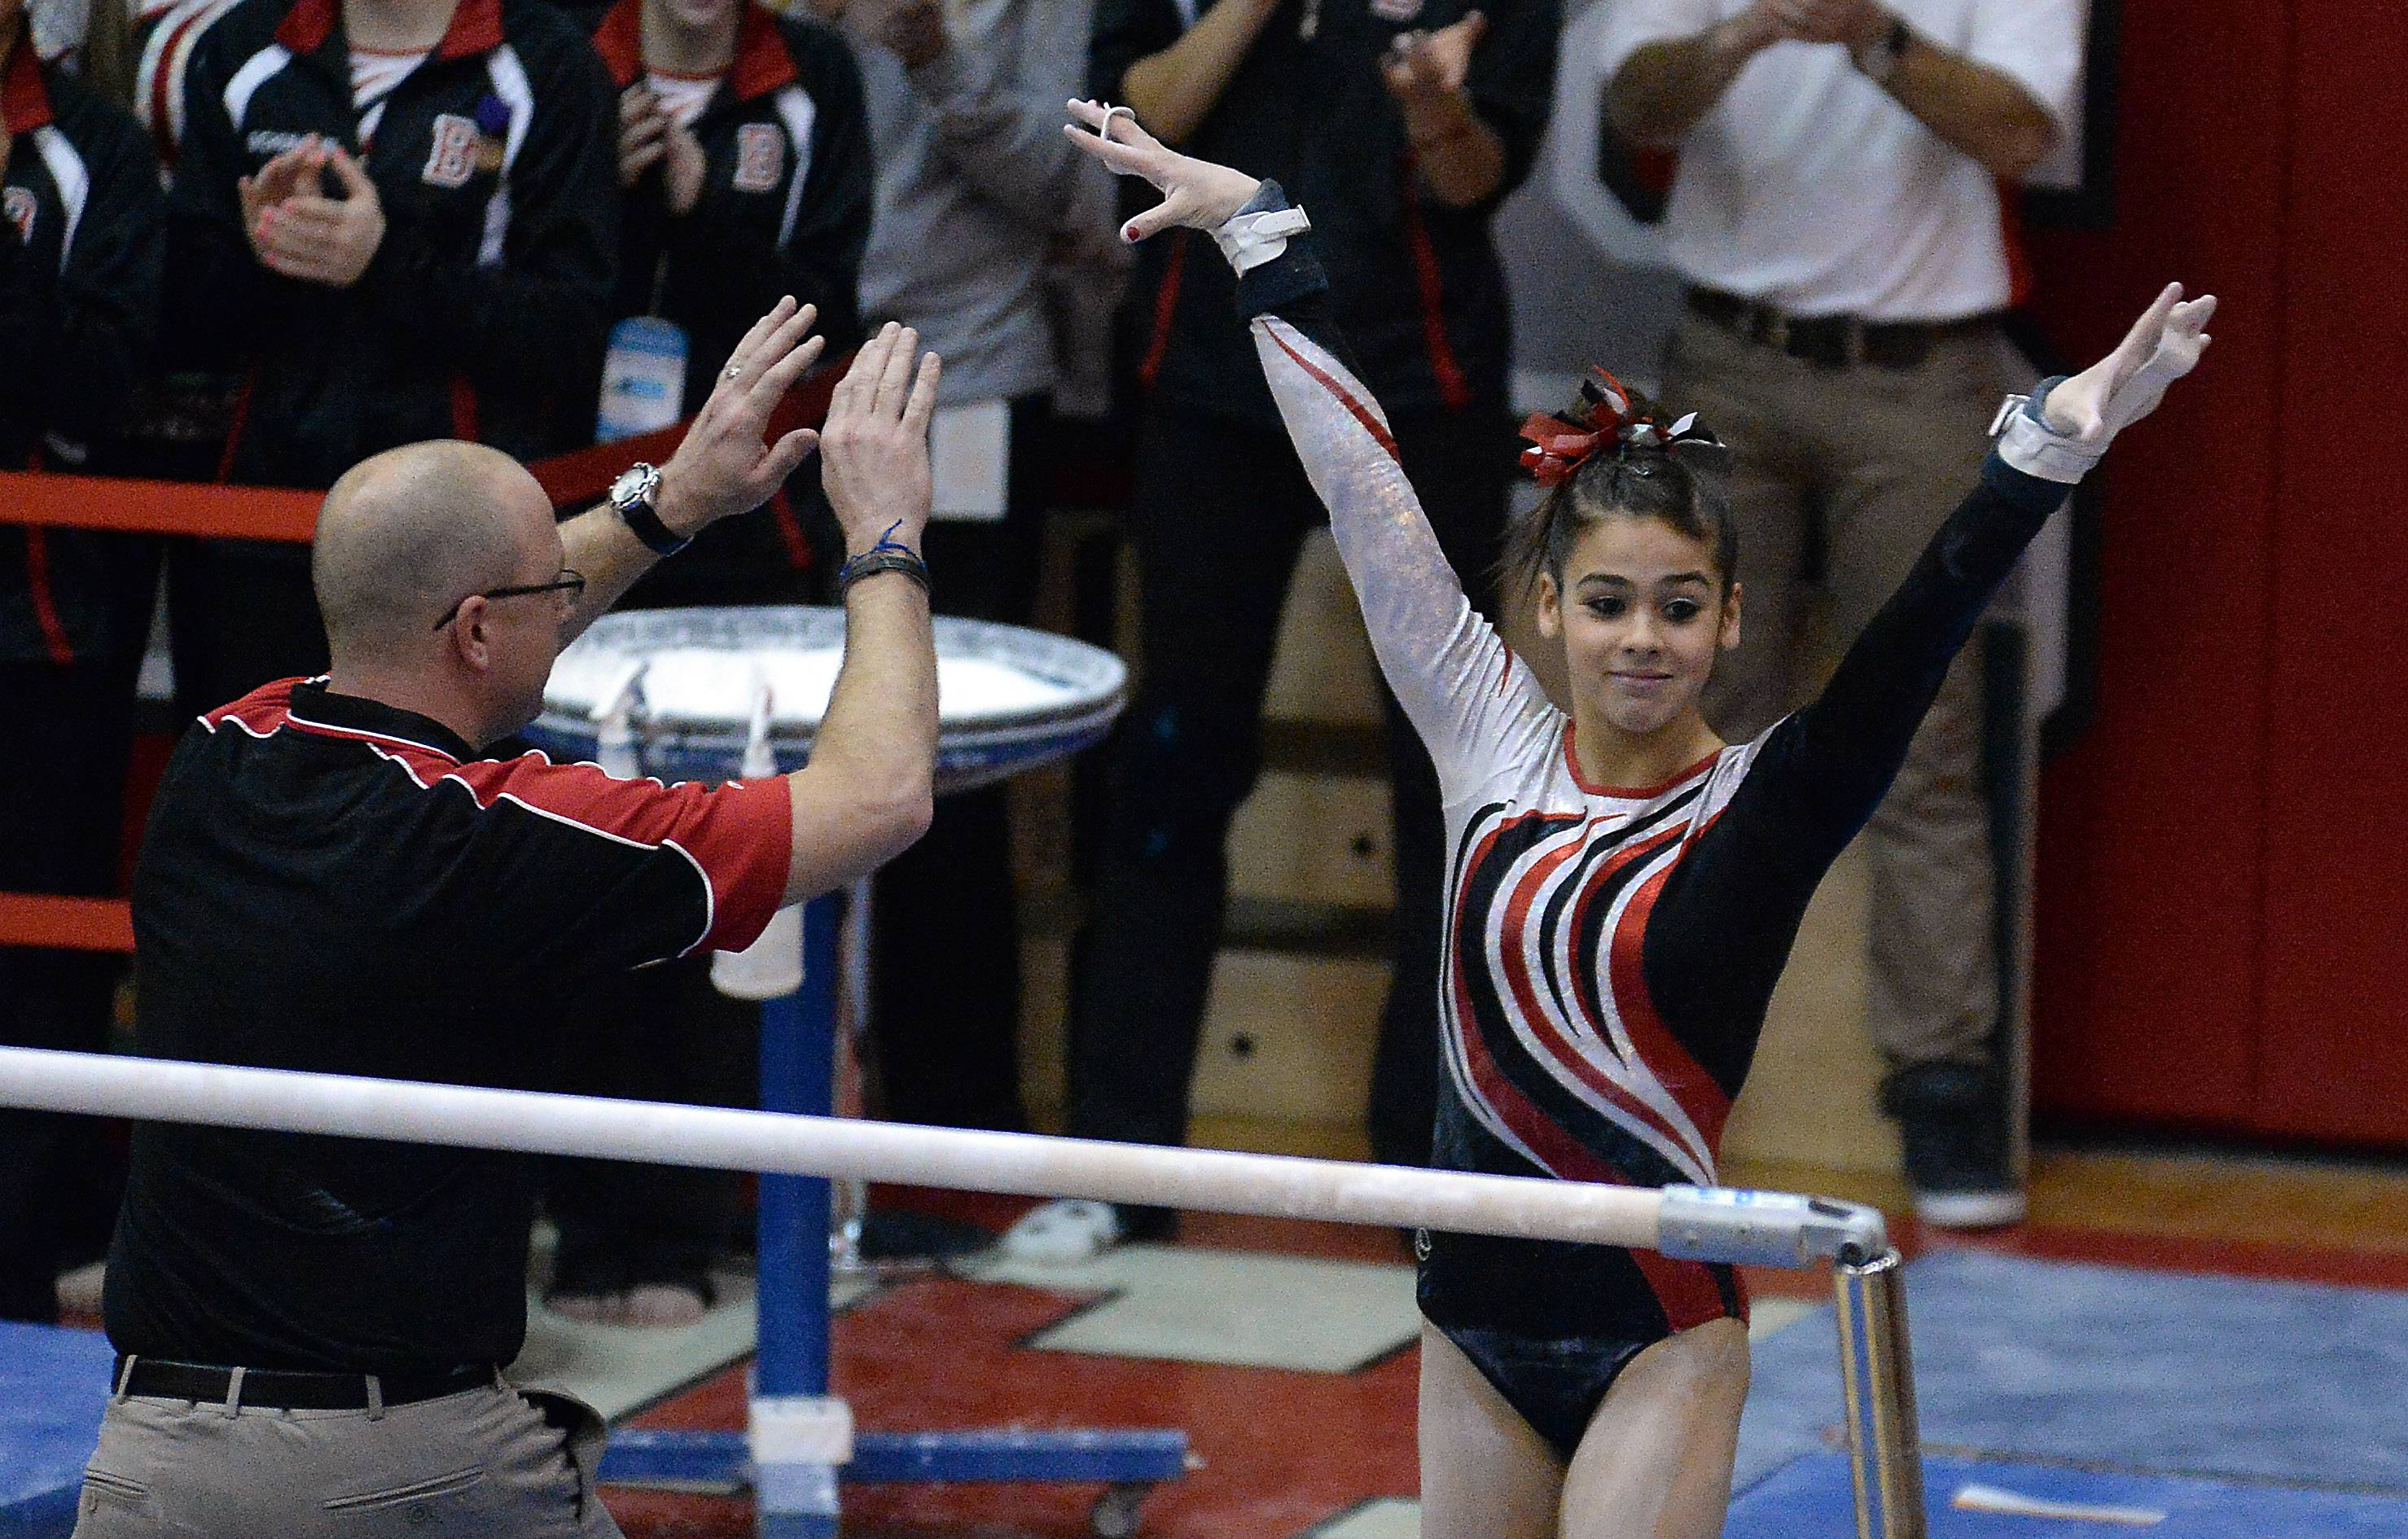 Barrington's Abby Hasanov celebrates her routine with her coach after competing on the uneven parallel bars.